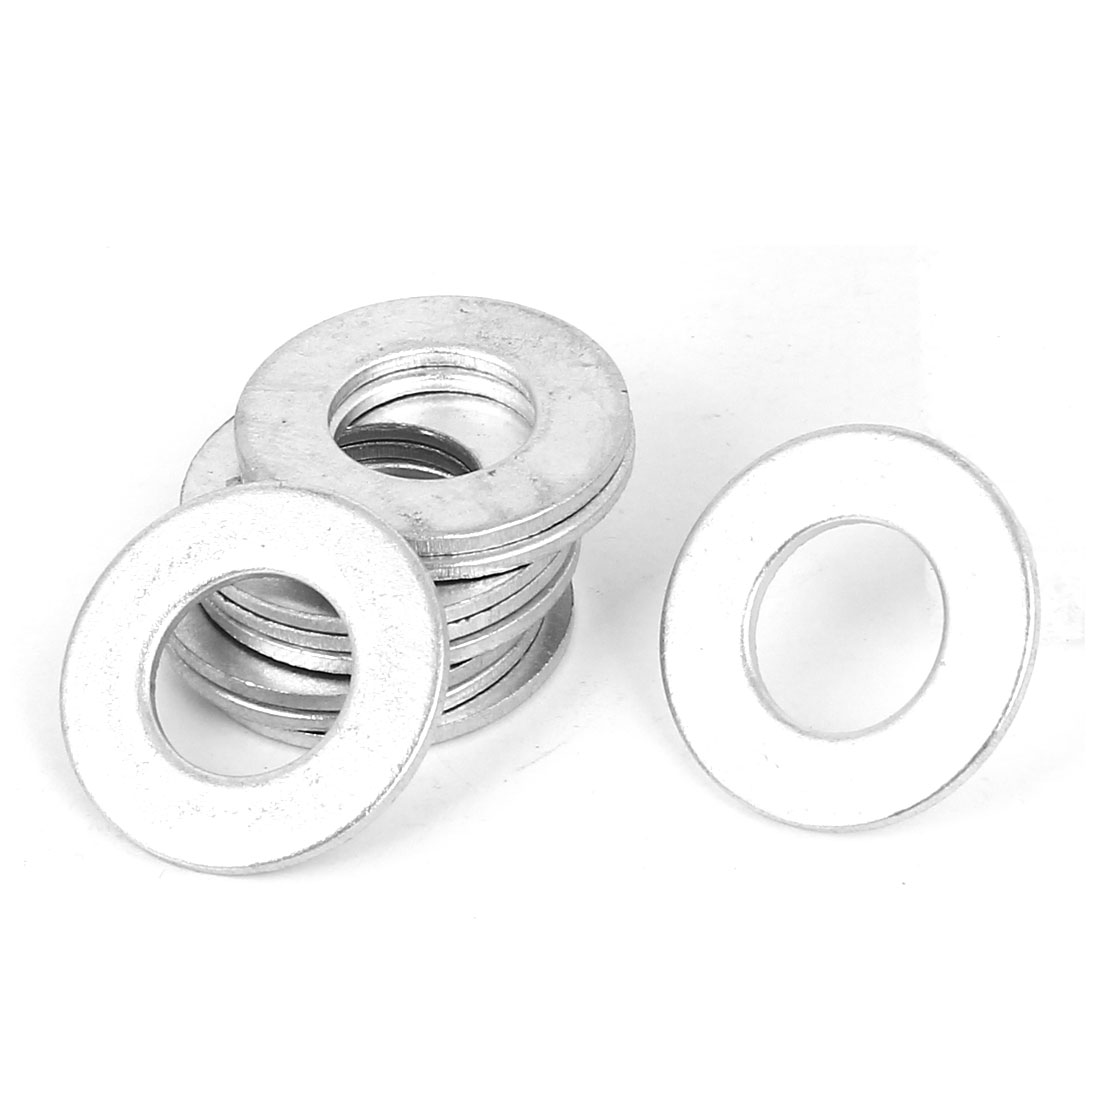 12mm x 24mm Zinc Plated Flat Spacers Washers Gaskets Fasteners GB97 10PCS